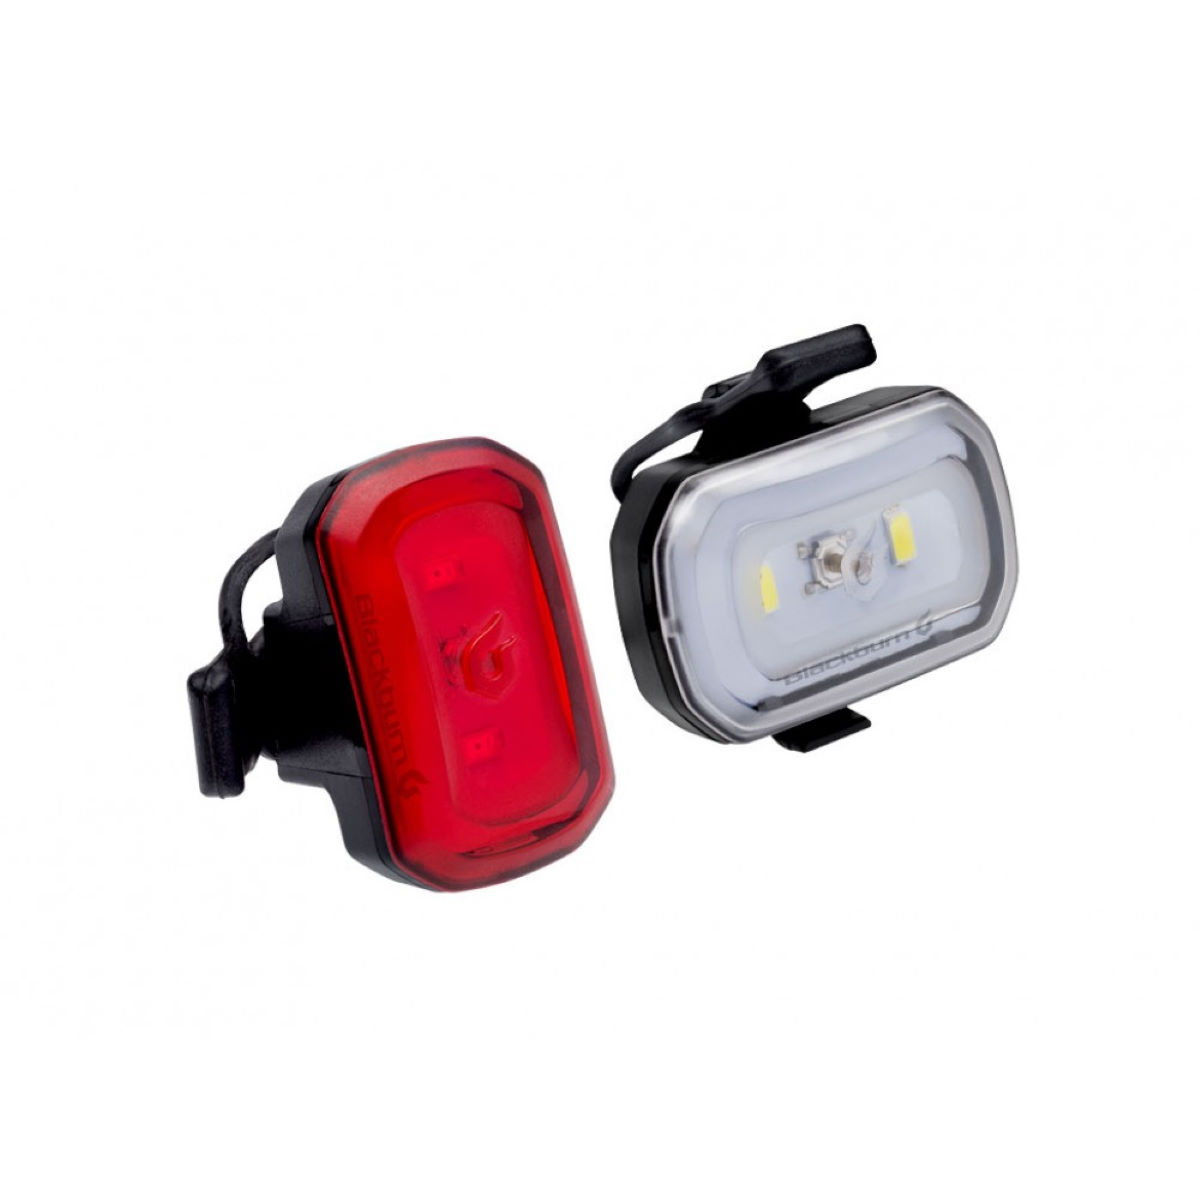 Blackburn Click USB Front and Rear Light Set - Juegos de luces